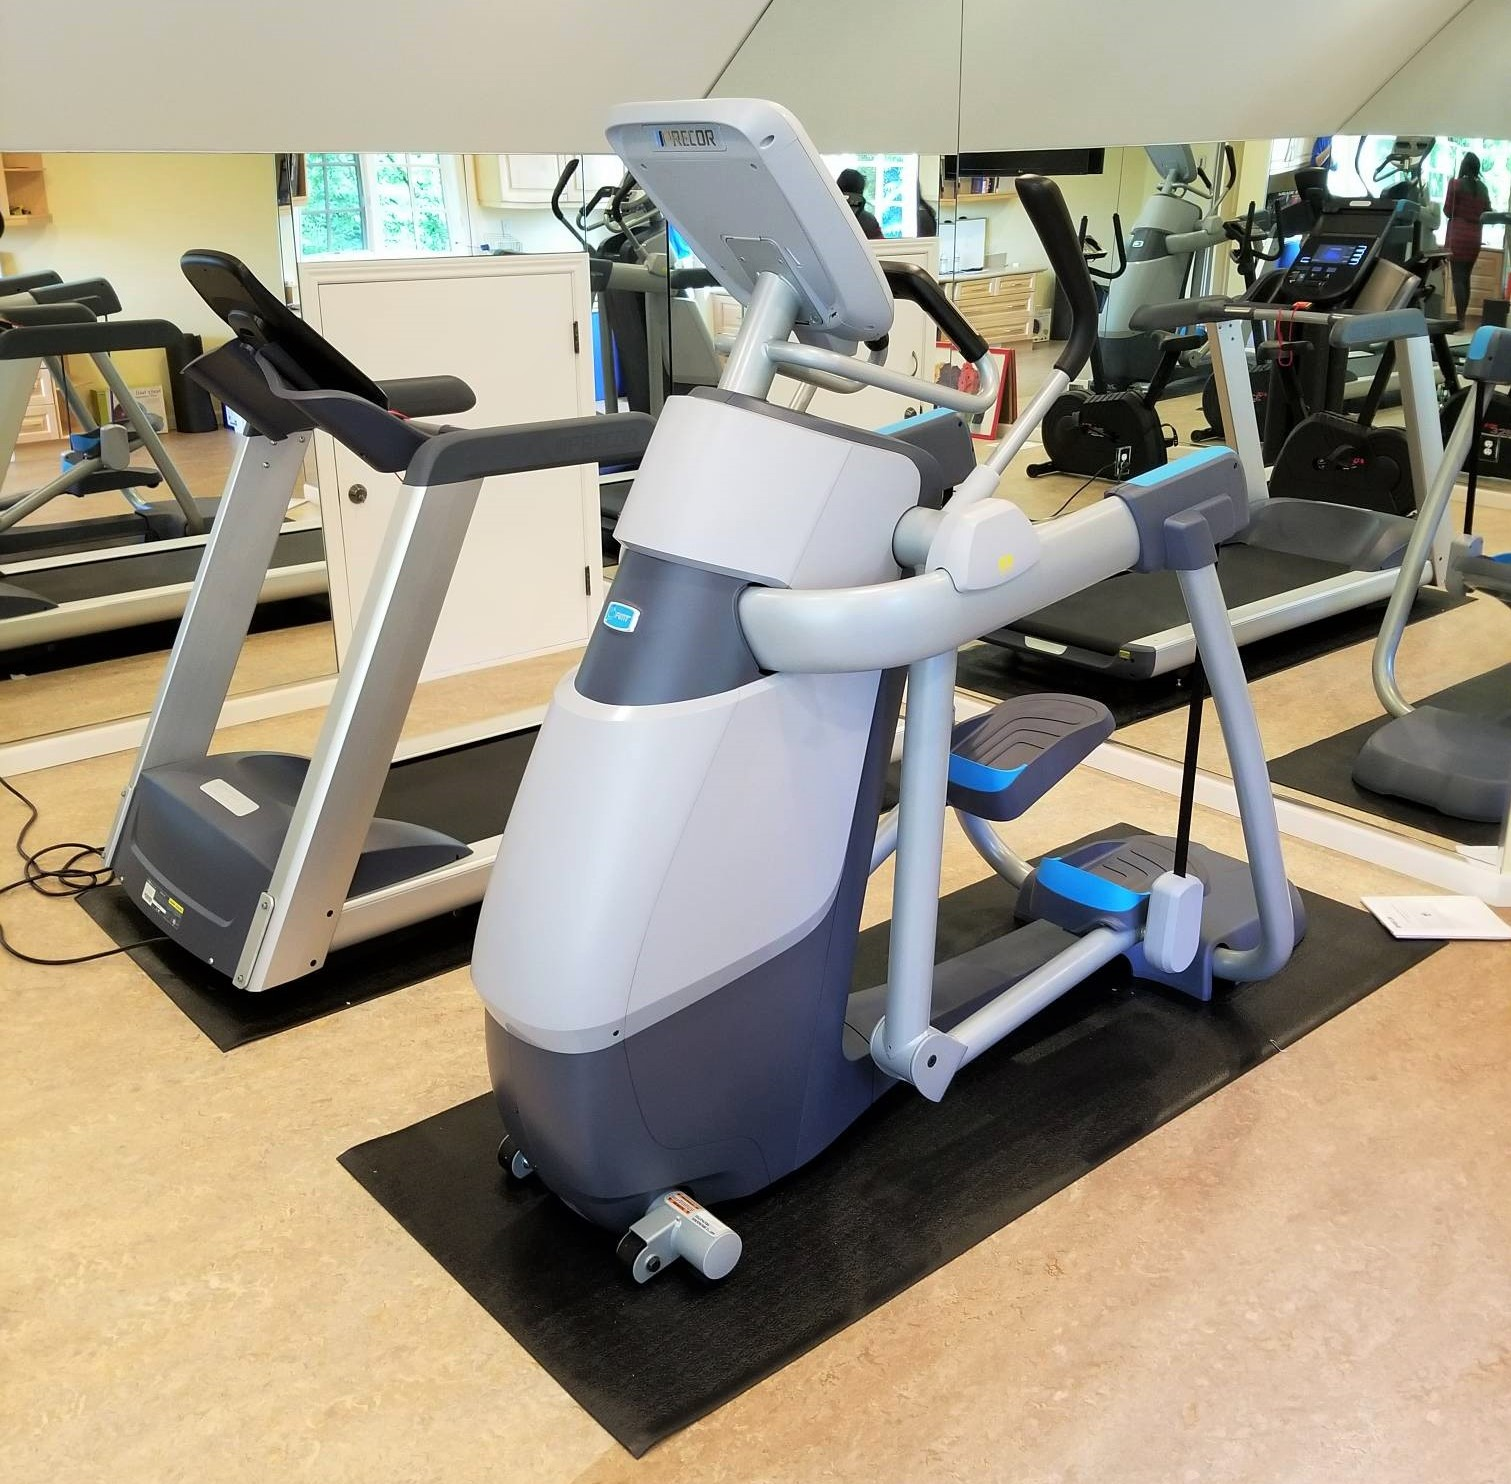 Fitness Equipment Maintenance Near Me: Delivery & Installation Of Fitness Equipment To Bellevue